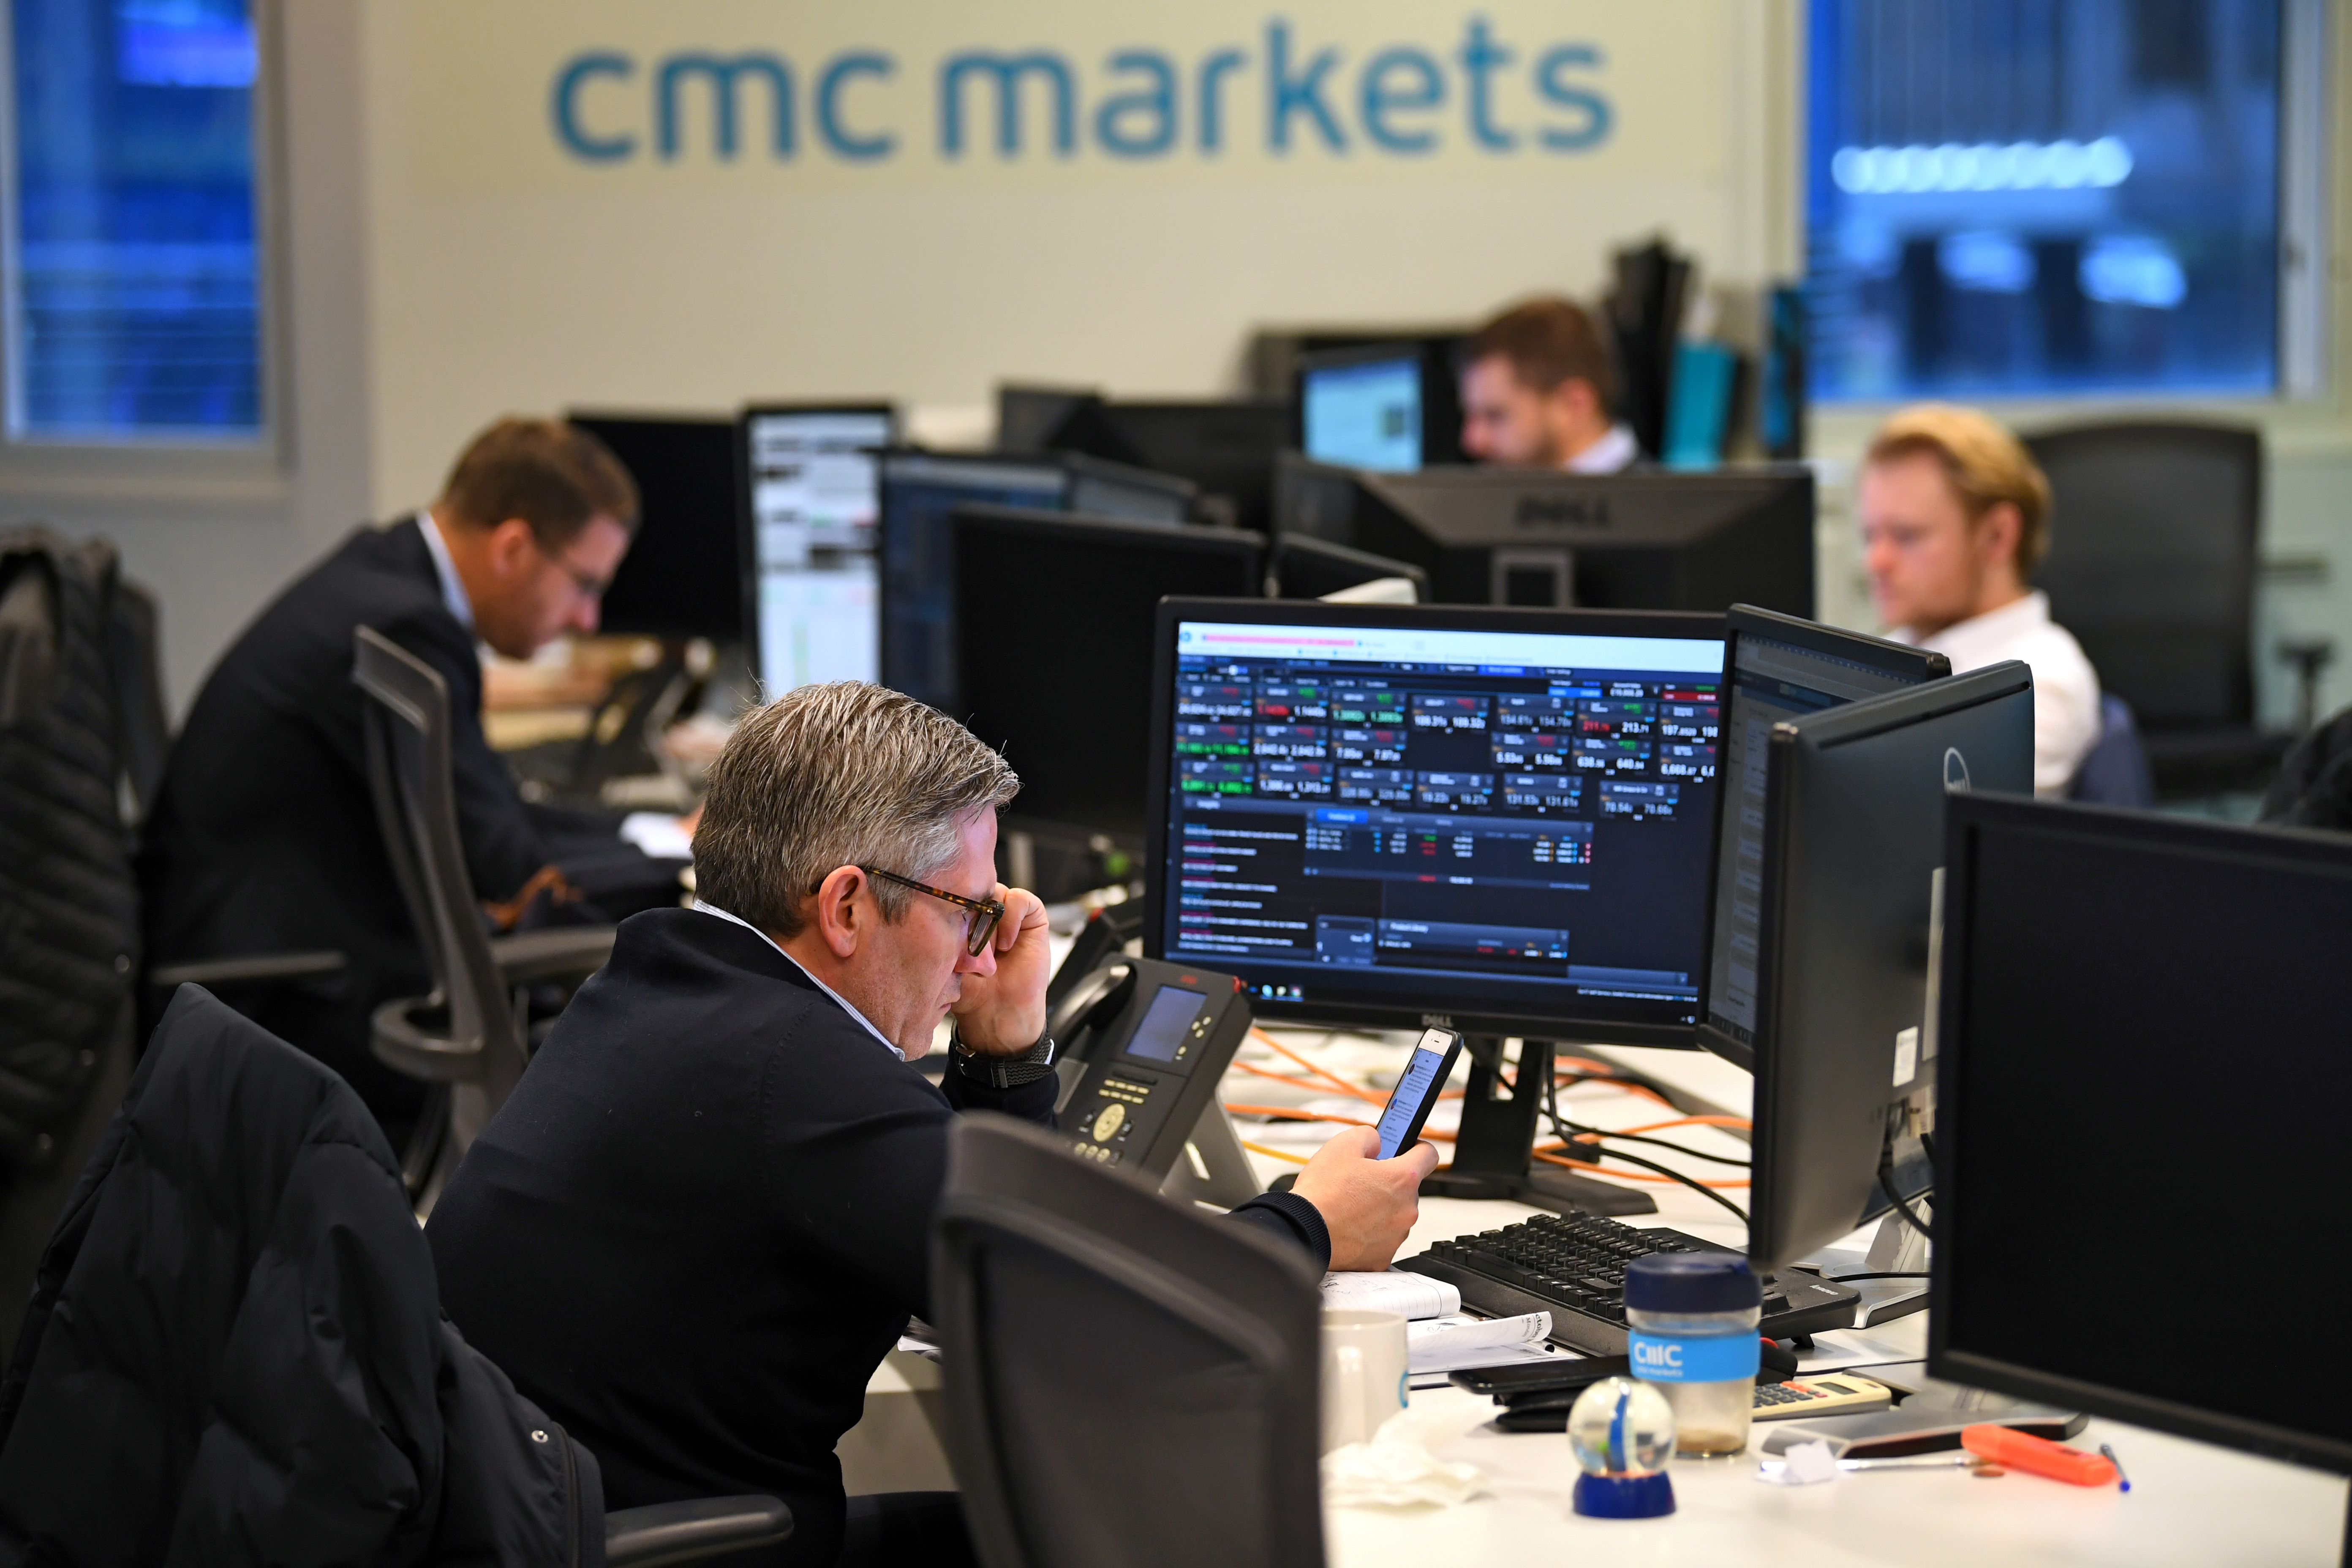 Dealers work at their desks whilst screens show market data at CMC Markets in London, Britain, January 30, 2019. REUTERS/Dylan Martinez/File Photo